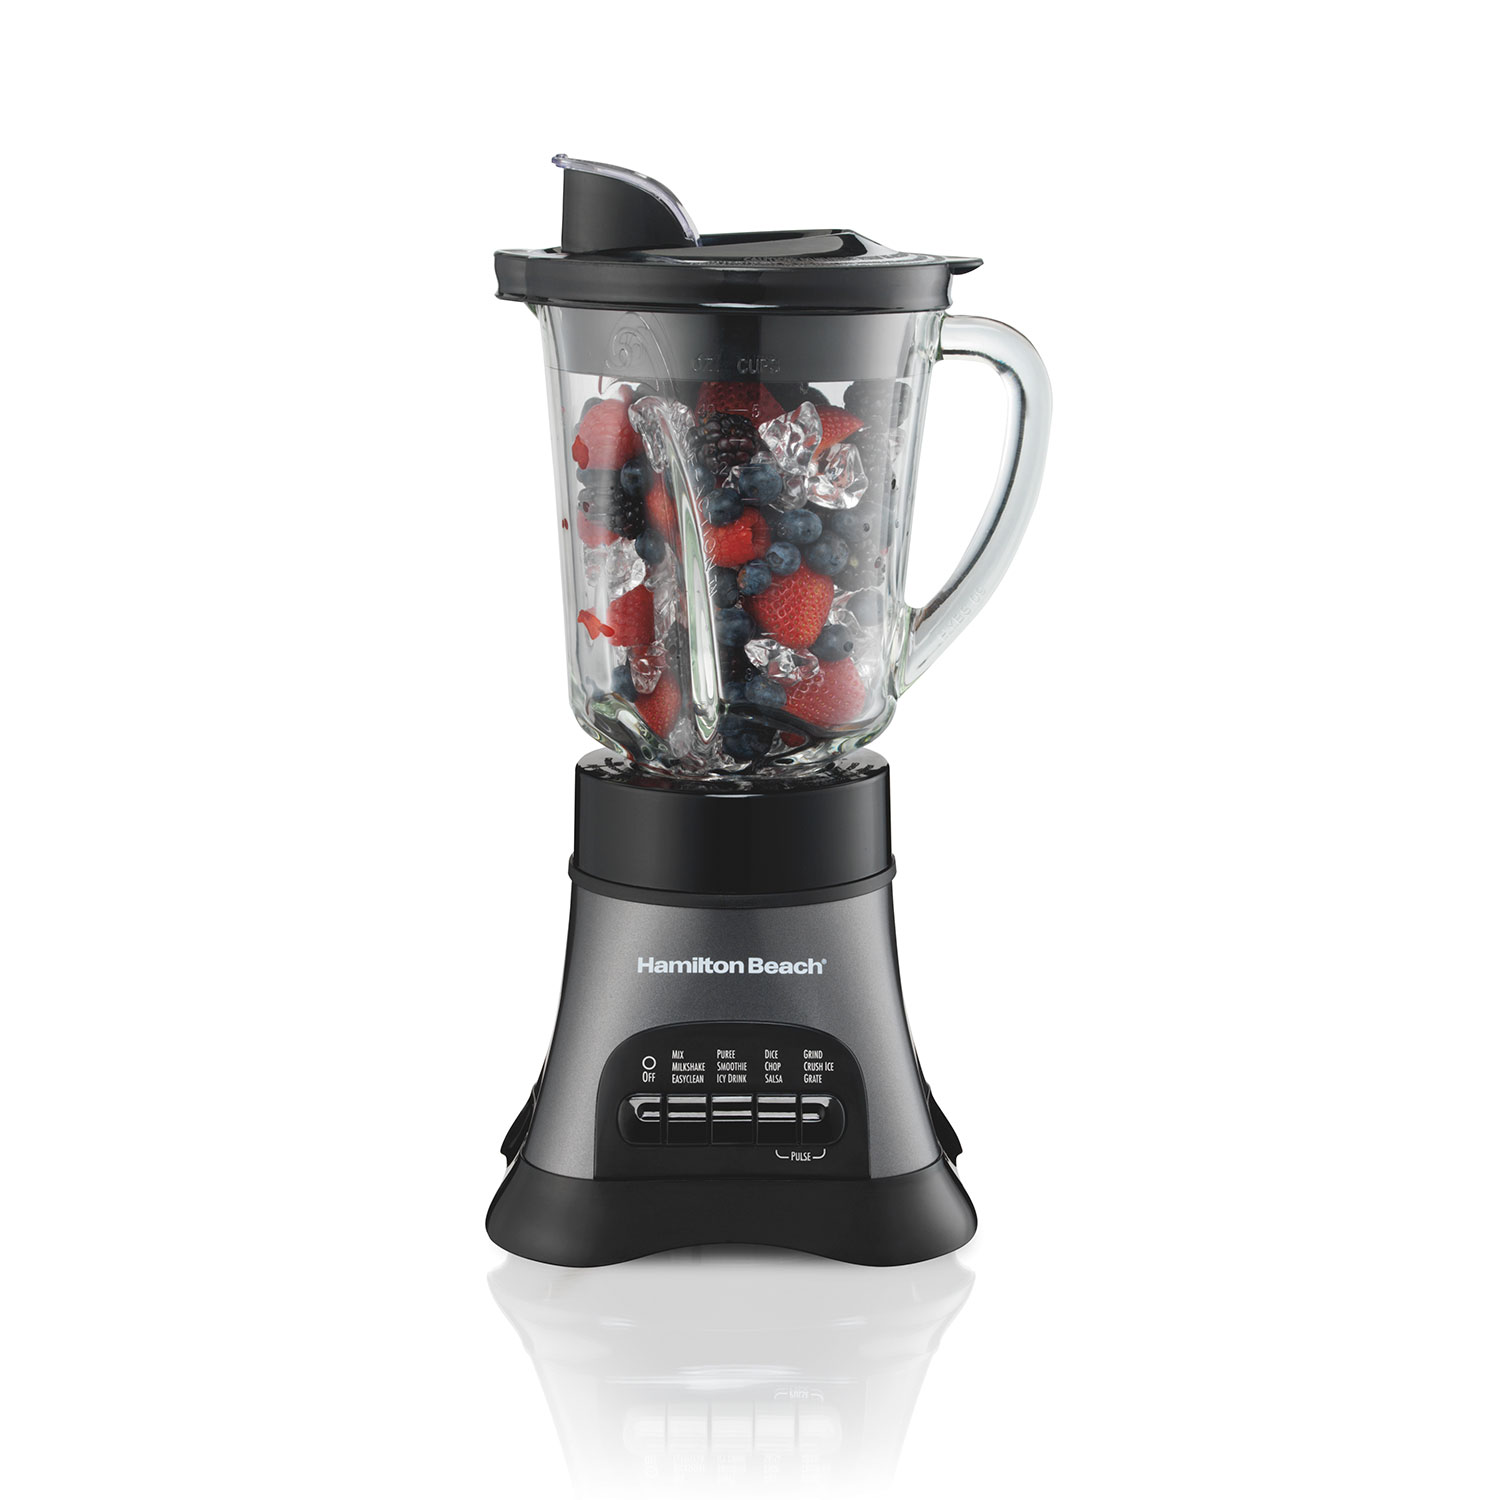 Wave Crusher® Multi-Function Blender/Chopper with 40oz Glass Jar, 700W Gray (58164)